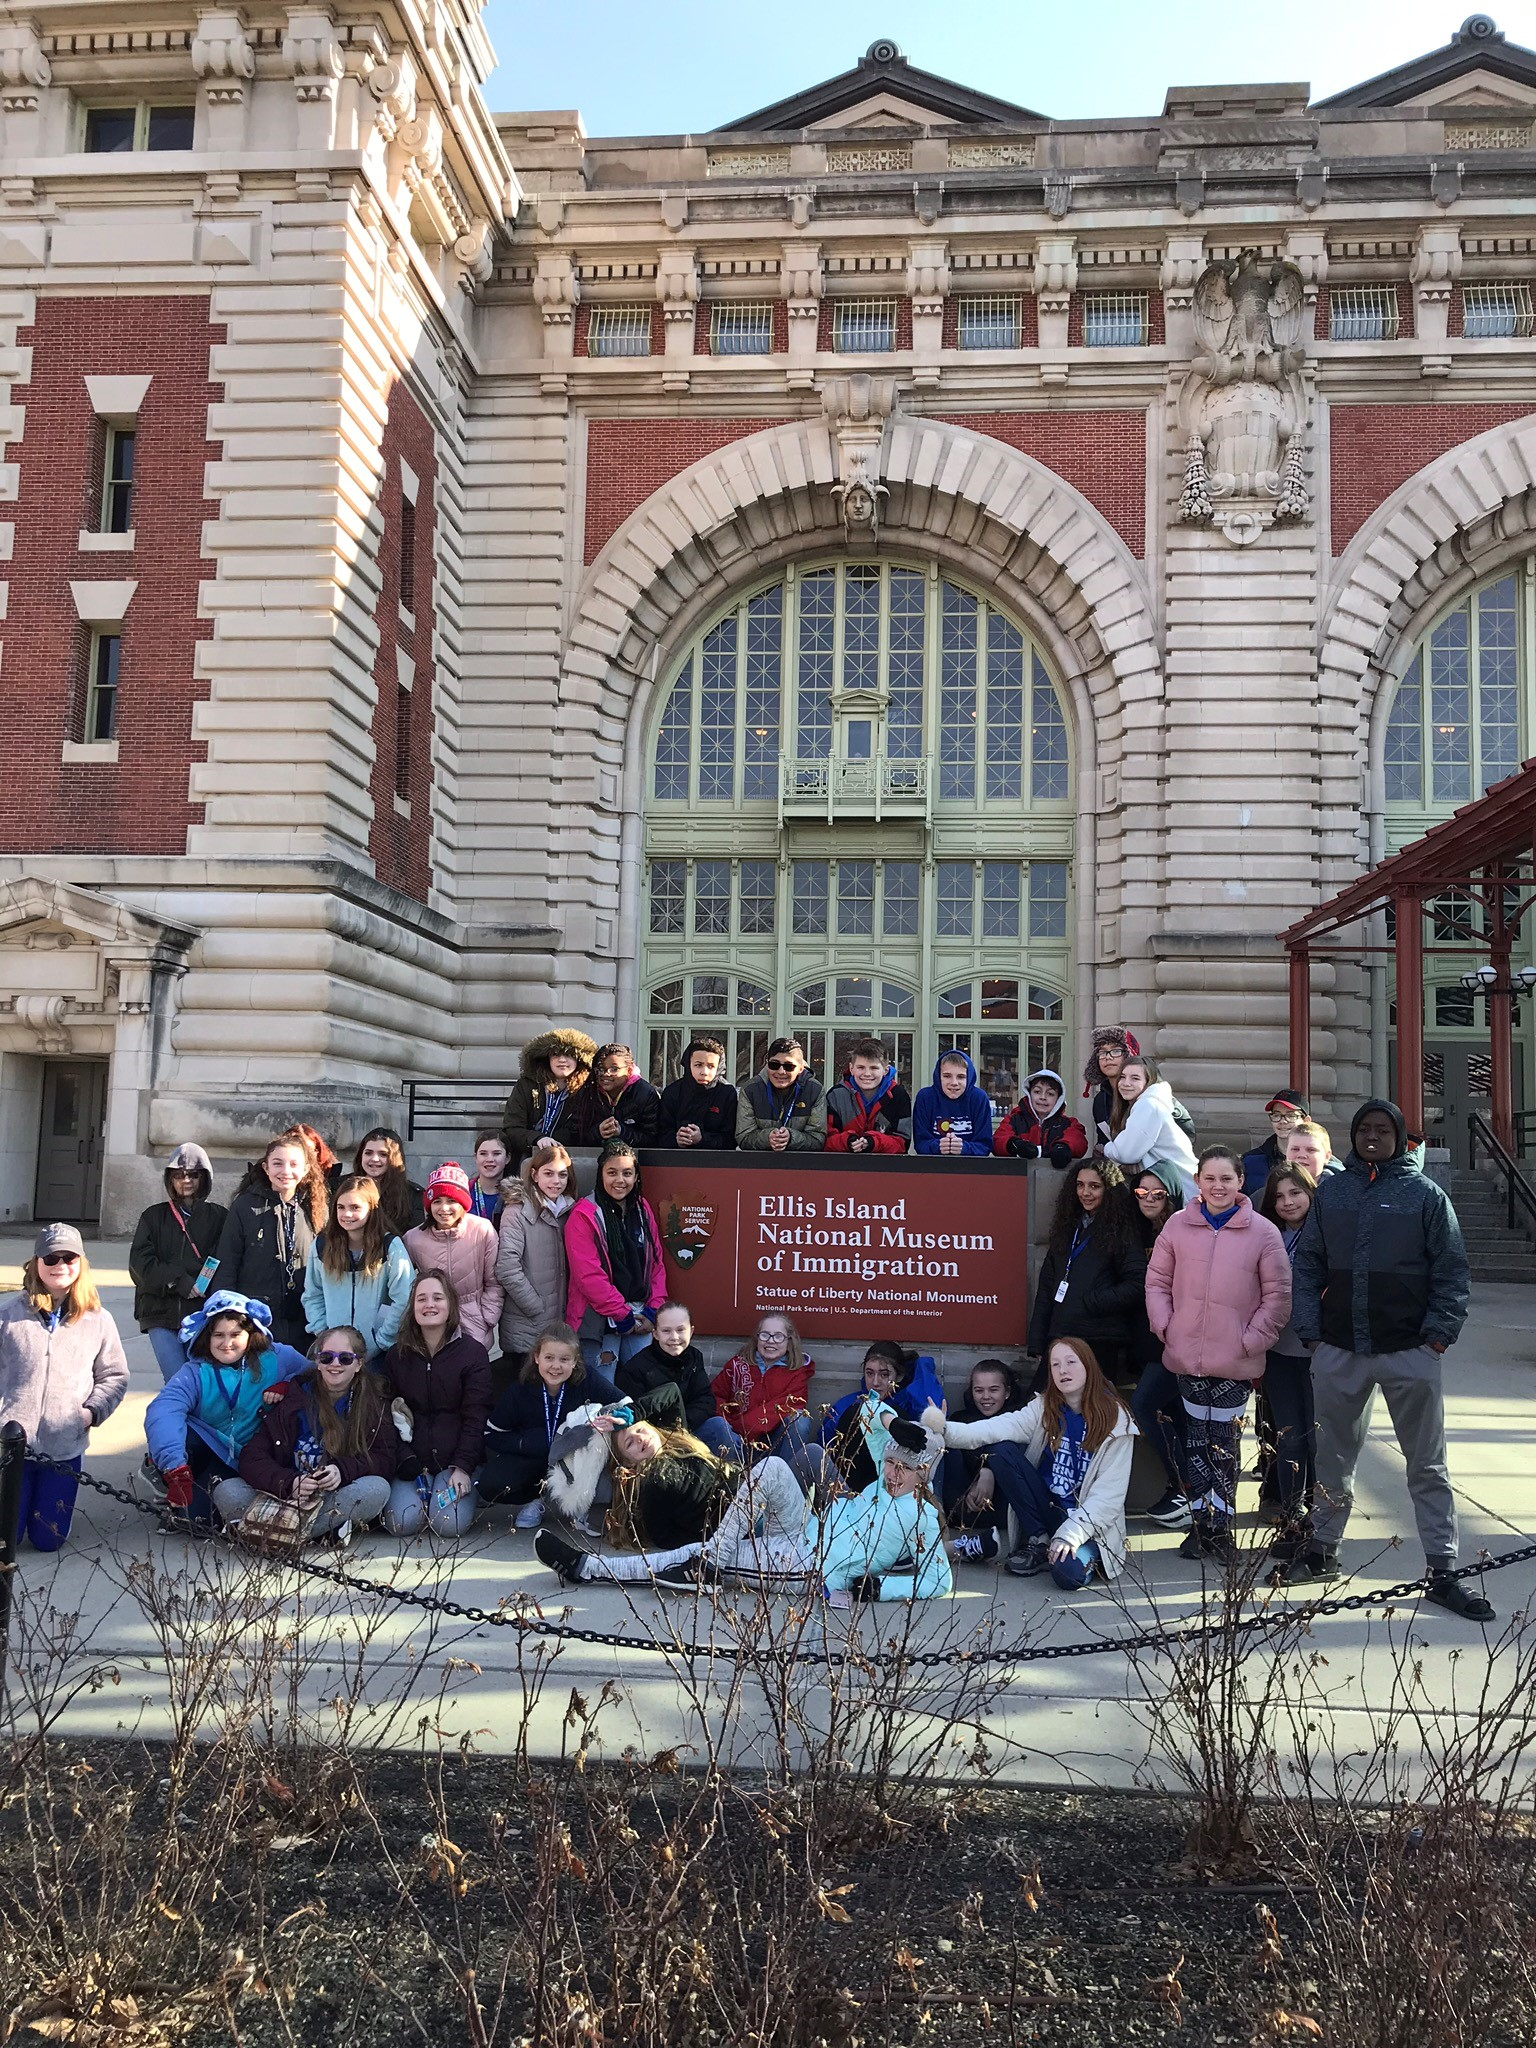 Sixth grade pupils are pictured outside of the Ellis Island National Museum of Immigration.